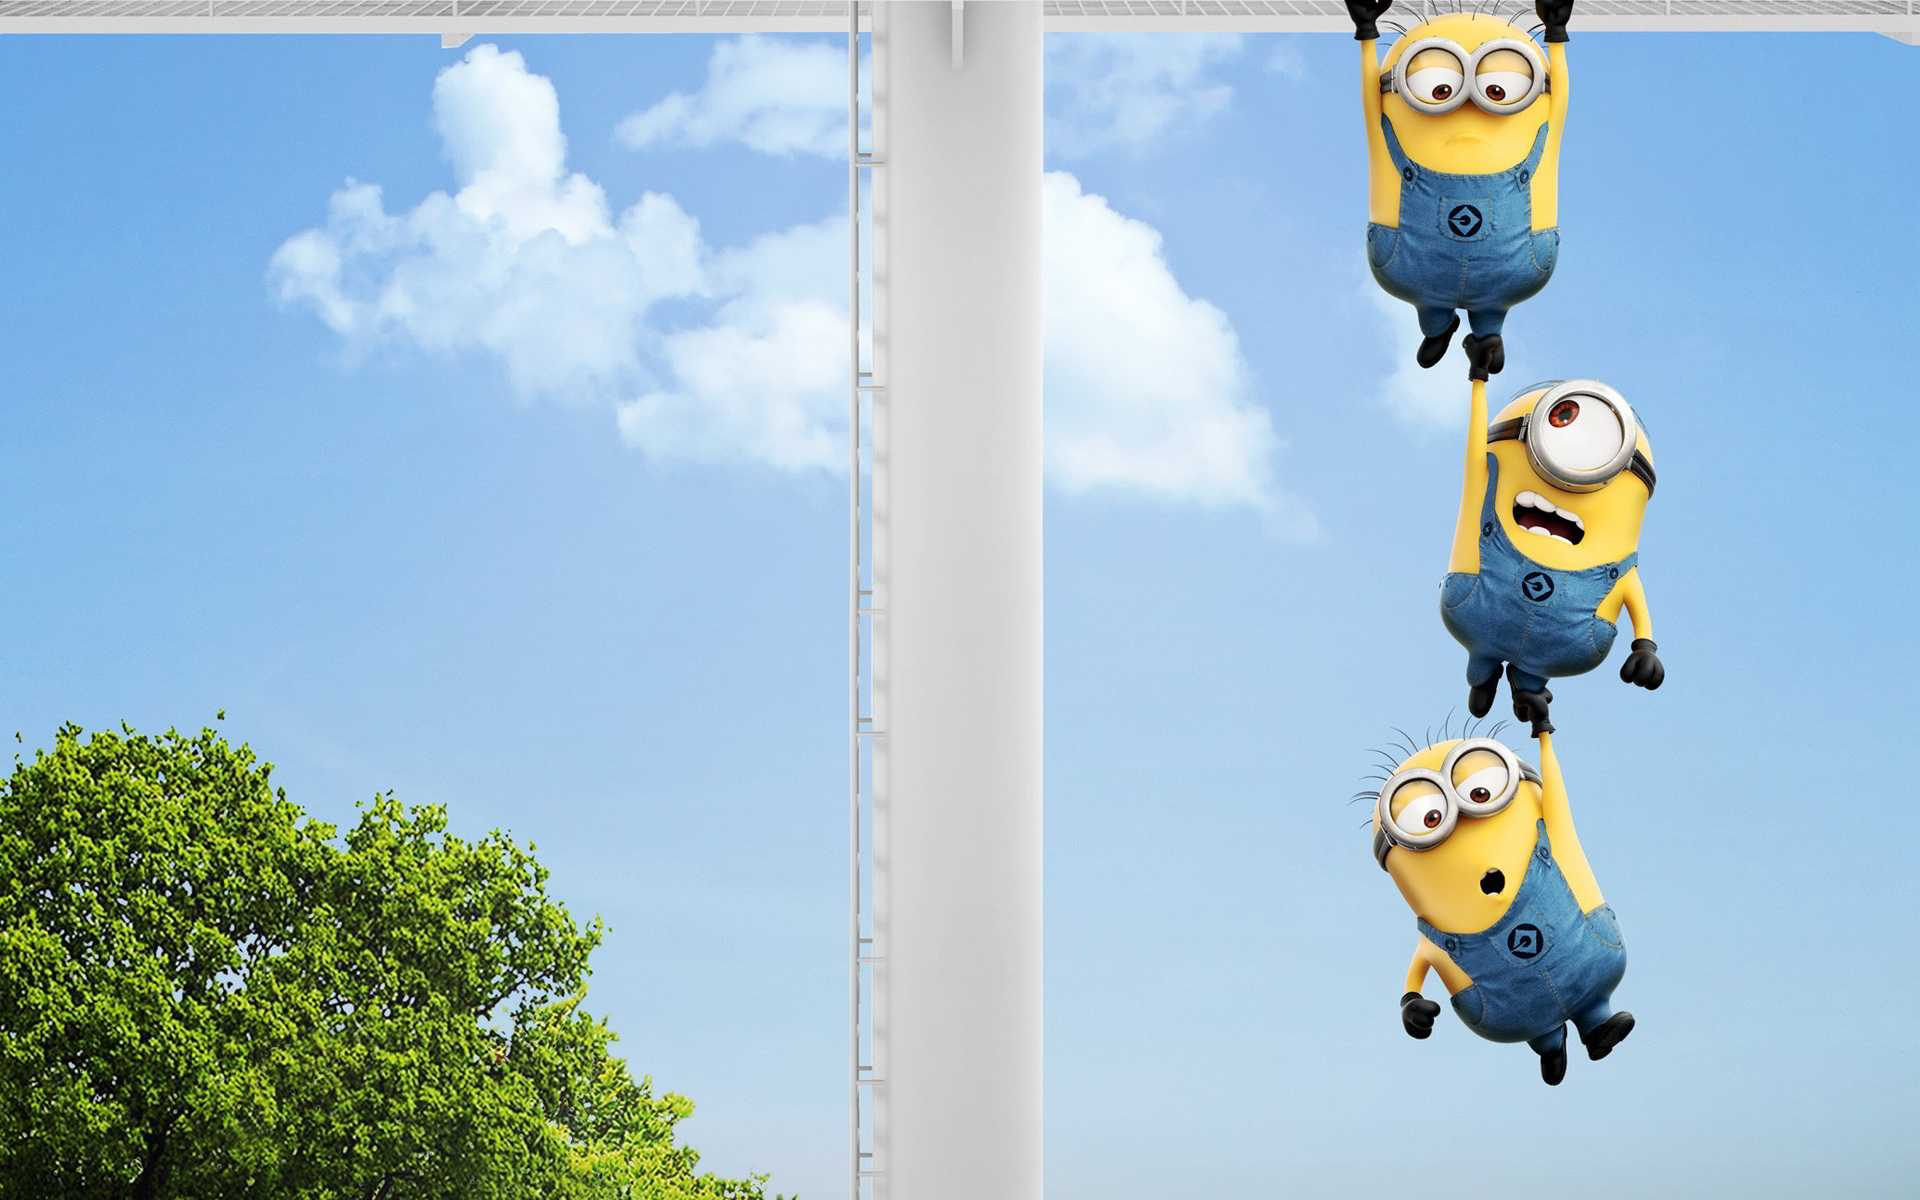 Despicable me 3 hd wallpapers - Despicable me minion screensaver ...